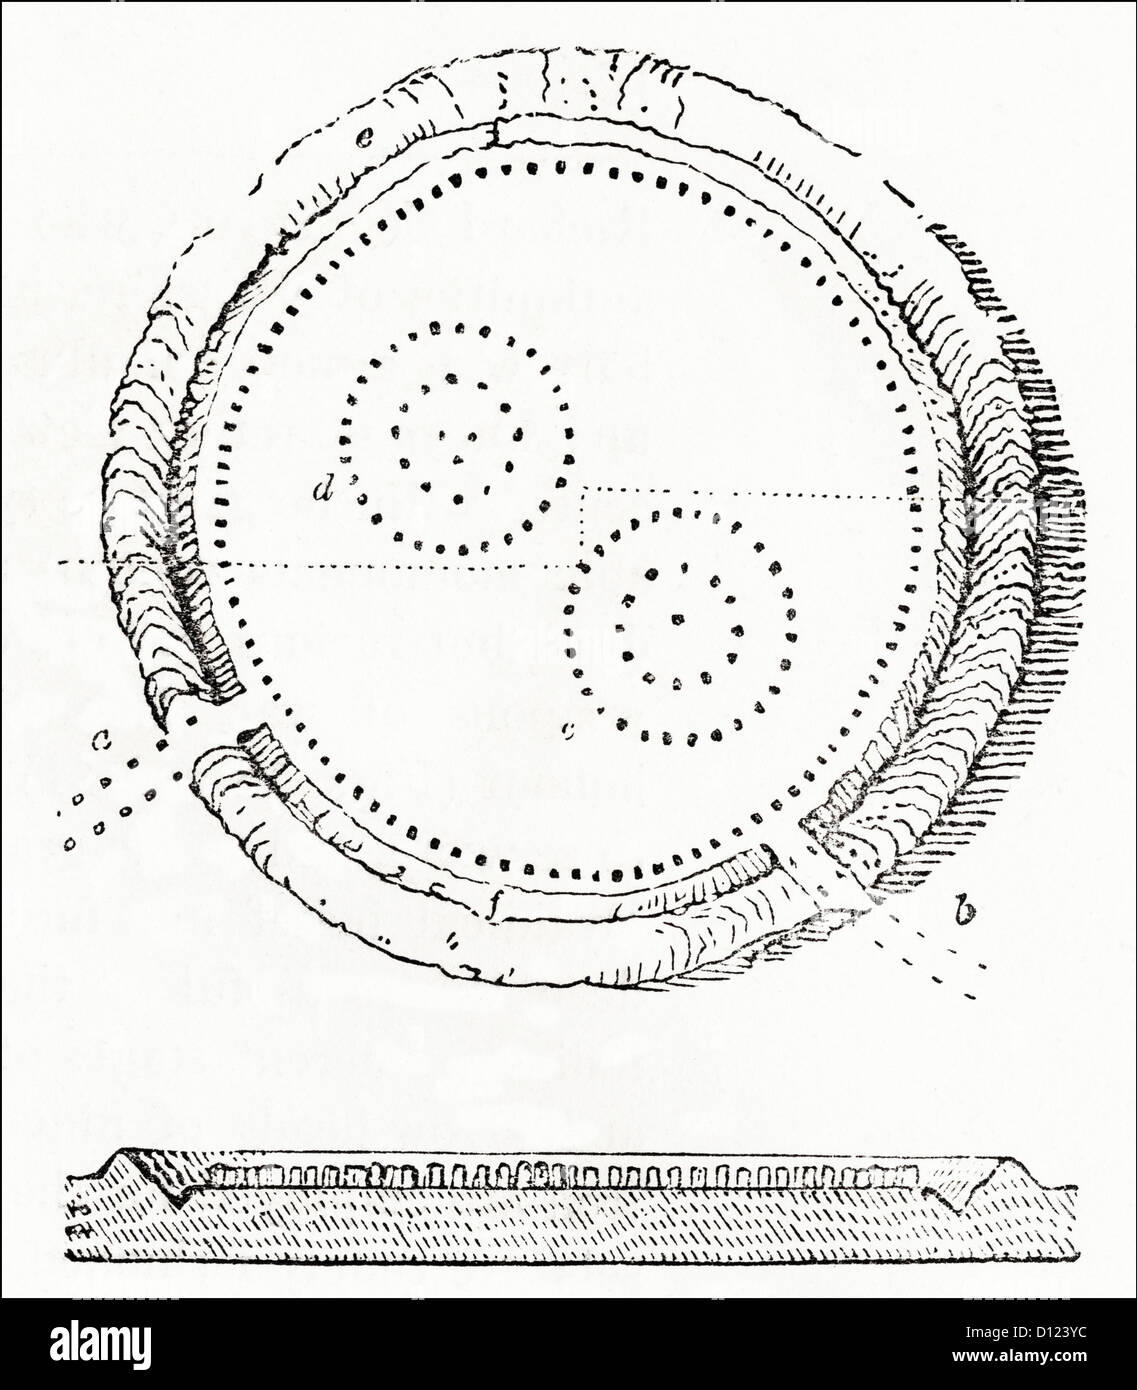 Plan and sectioned view of Avebury Neolithic henge stone circles Wiltshire England UK. Victorian woodcut engraving - Stock Image